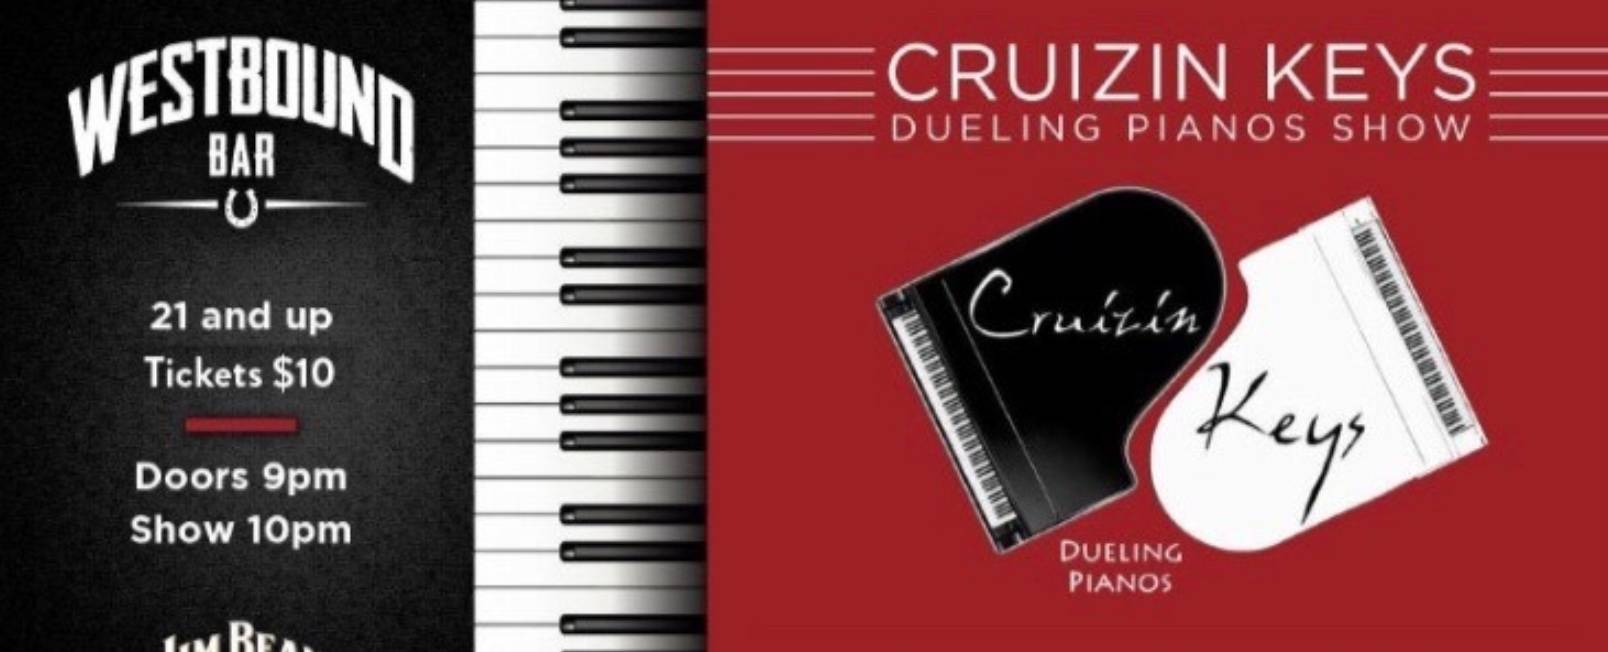 Cruizin Keys Dueling Pianos Show